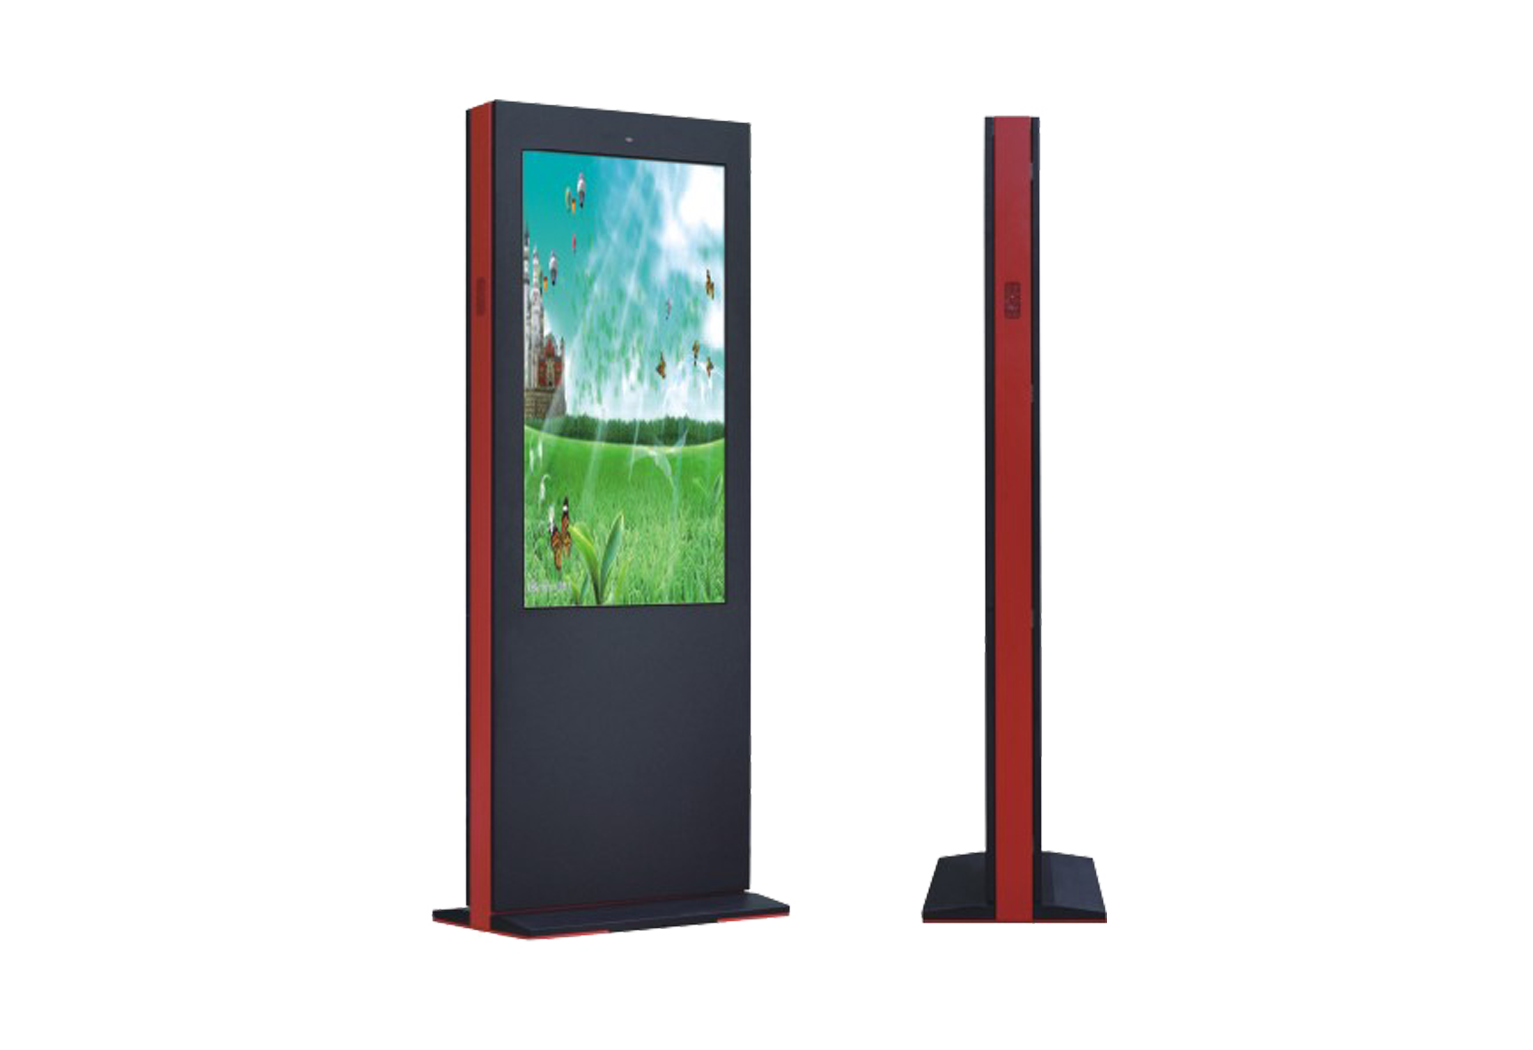 43/55 inch outdoor standing android (Without  touch)